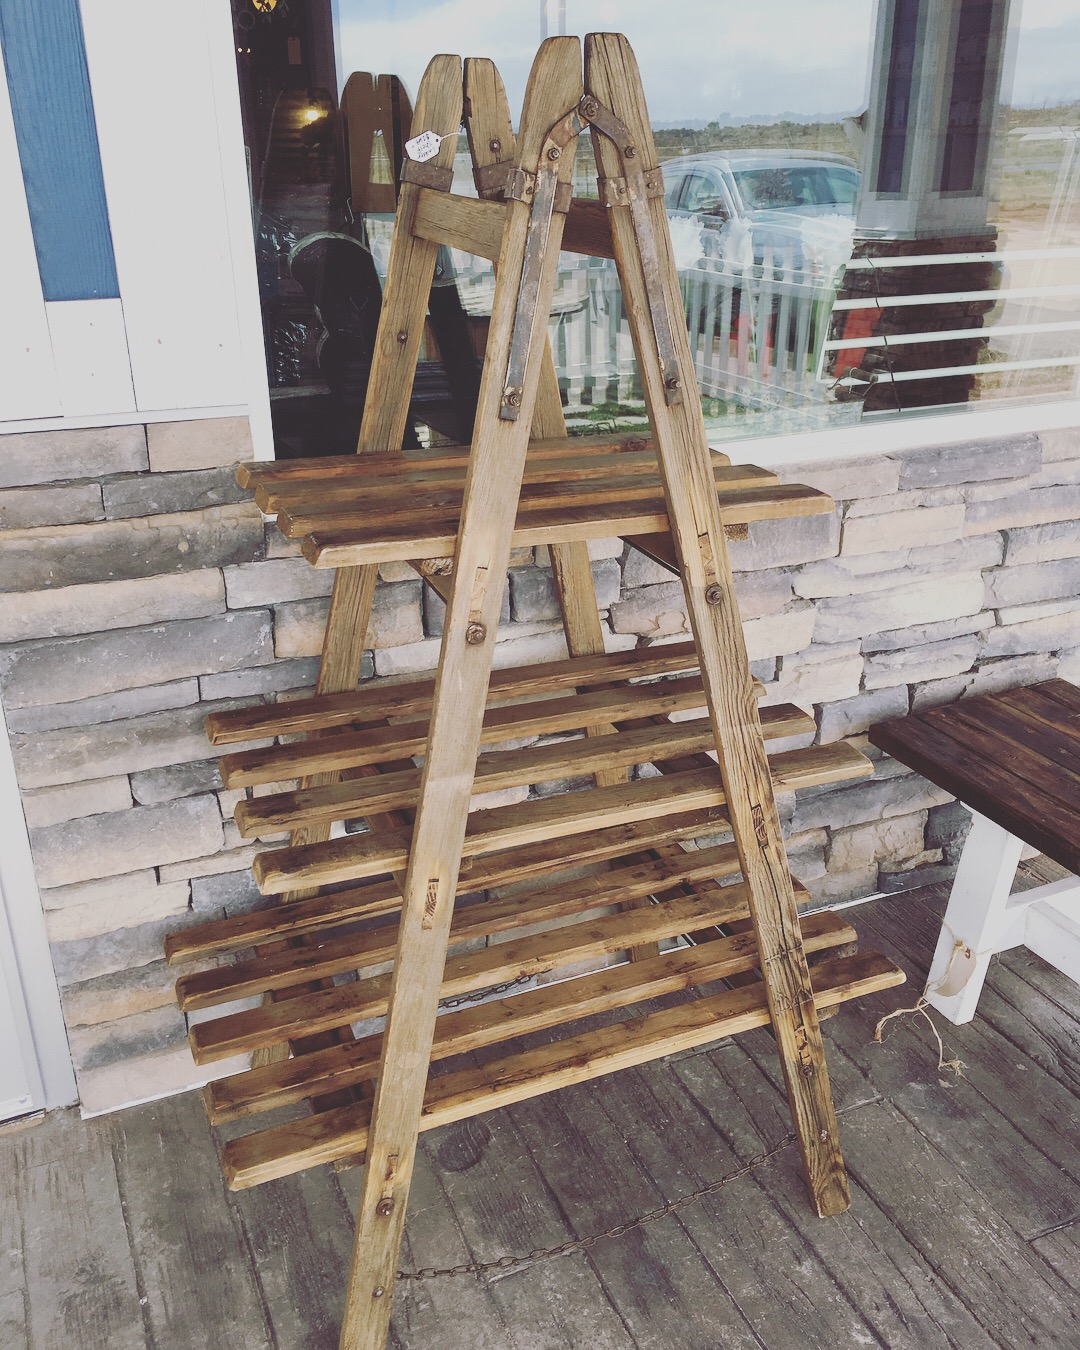 Vintage Ladder Shelf, $269